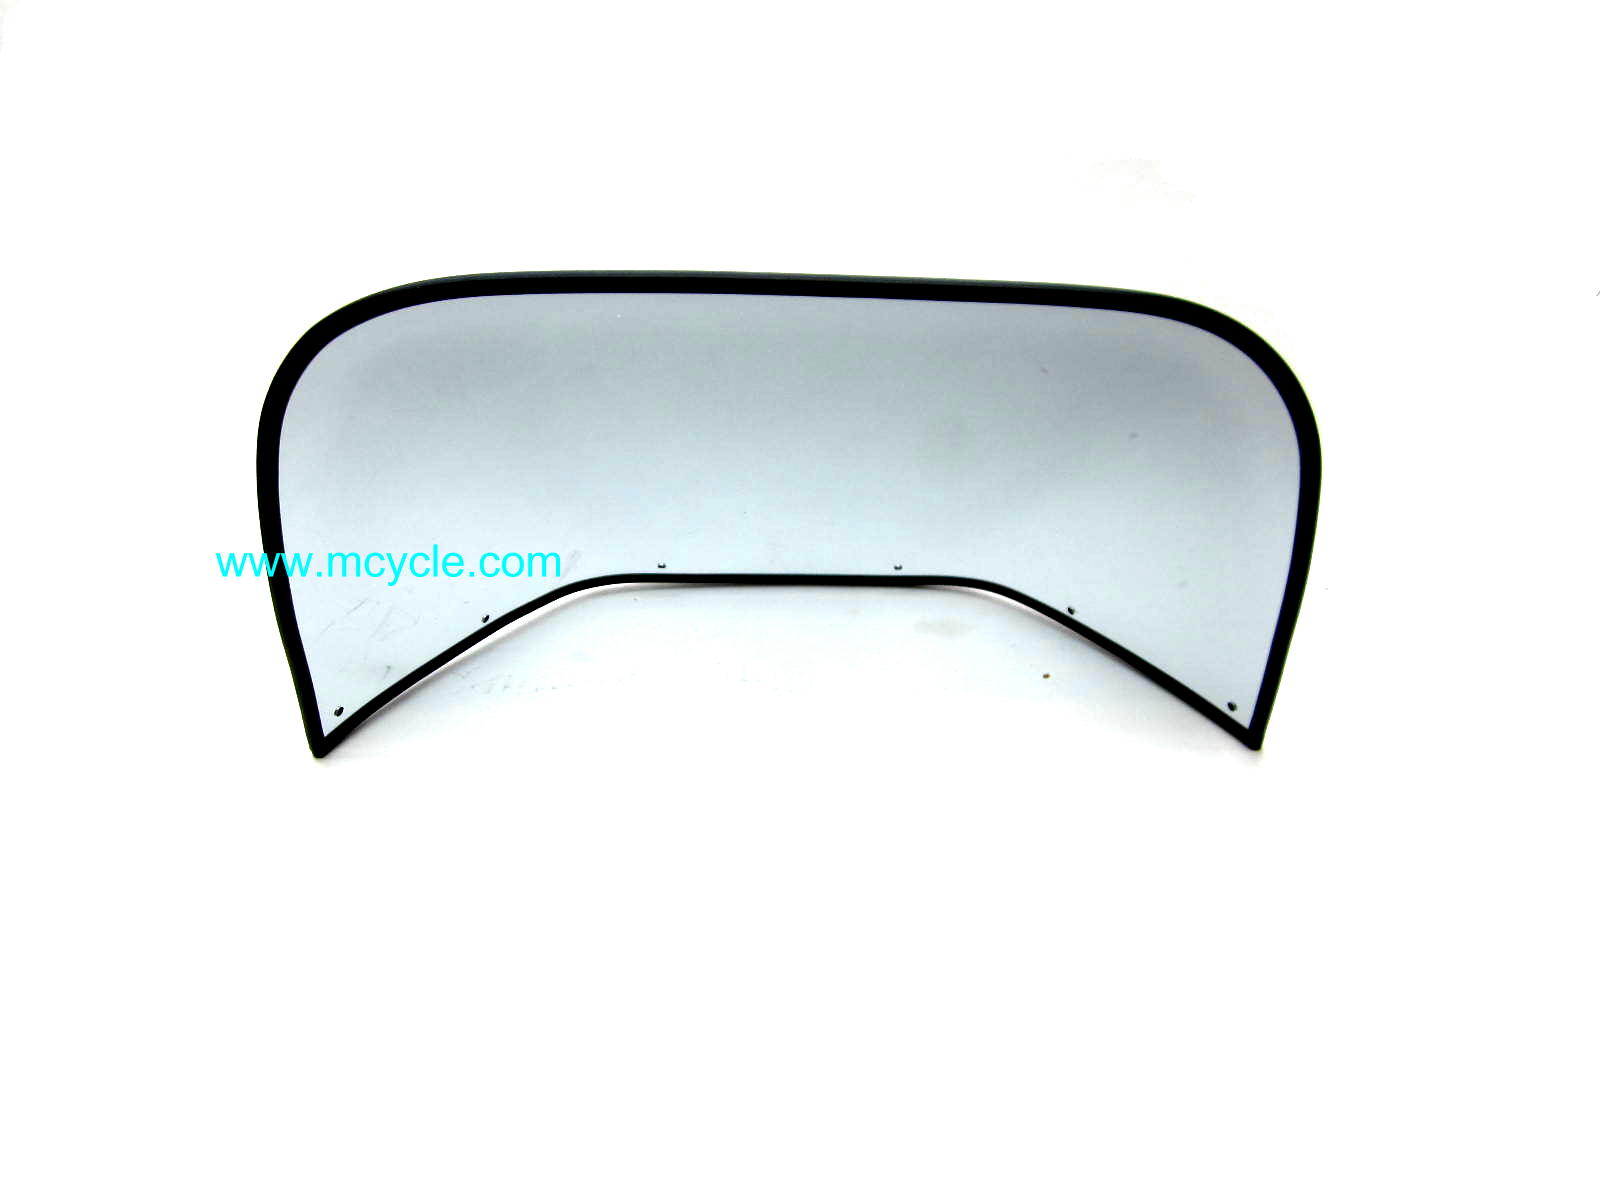 Windscreen, LeMans II and CX100 GU14577255